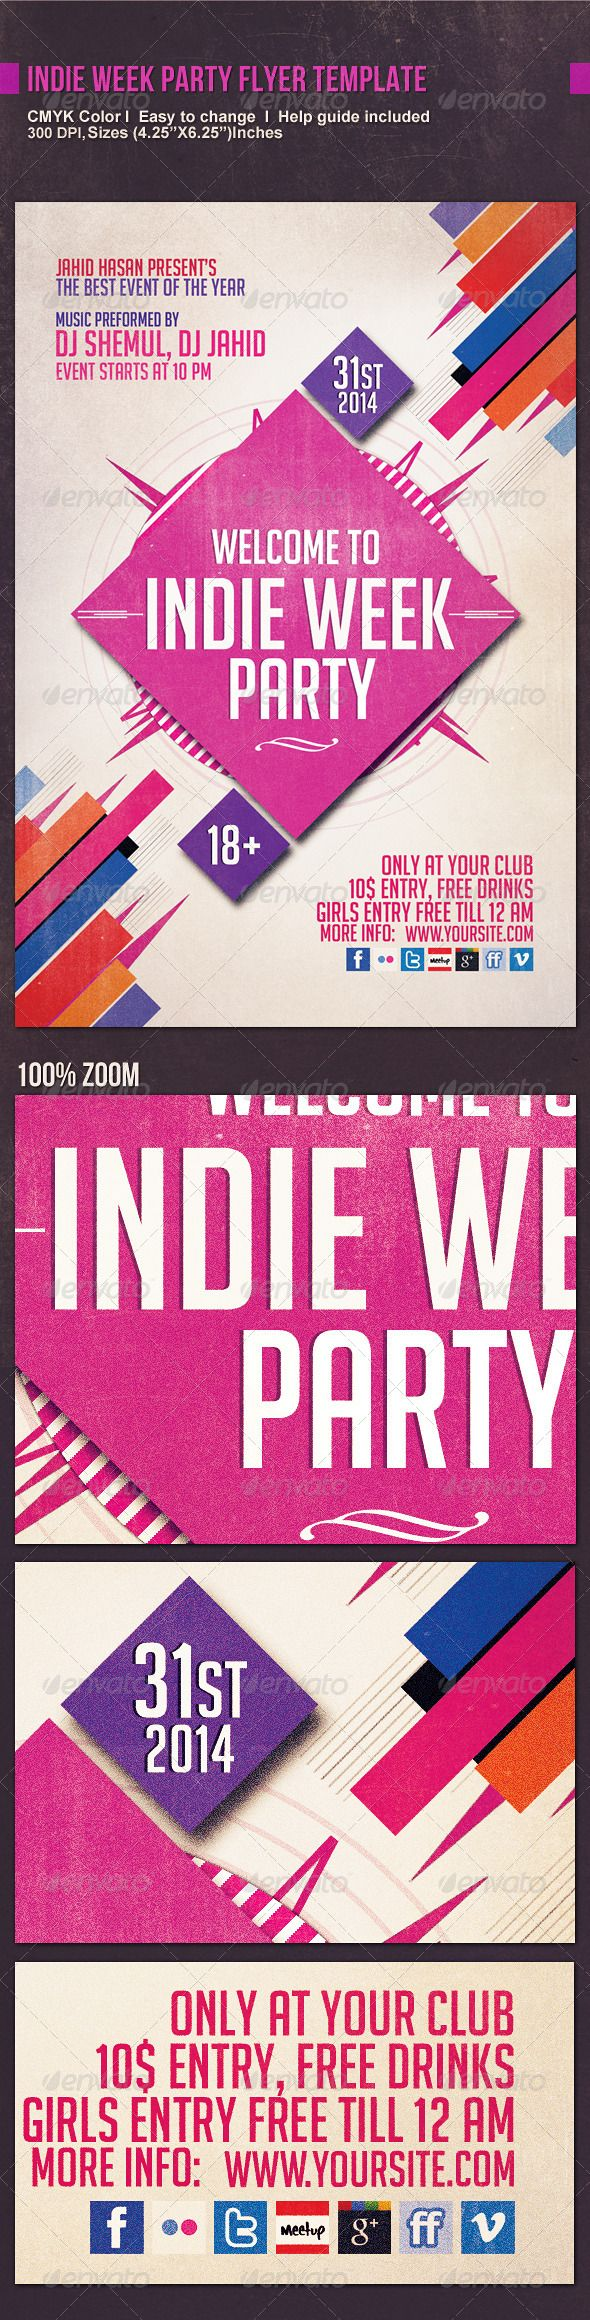 Indie Week Party Flyer Template  Photoshop Psd Old Rocked Flyer